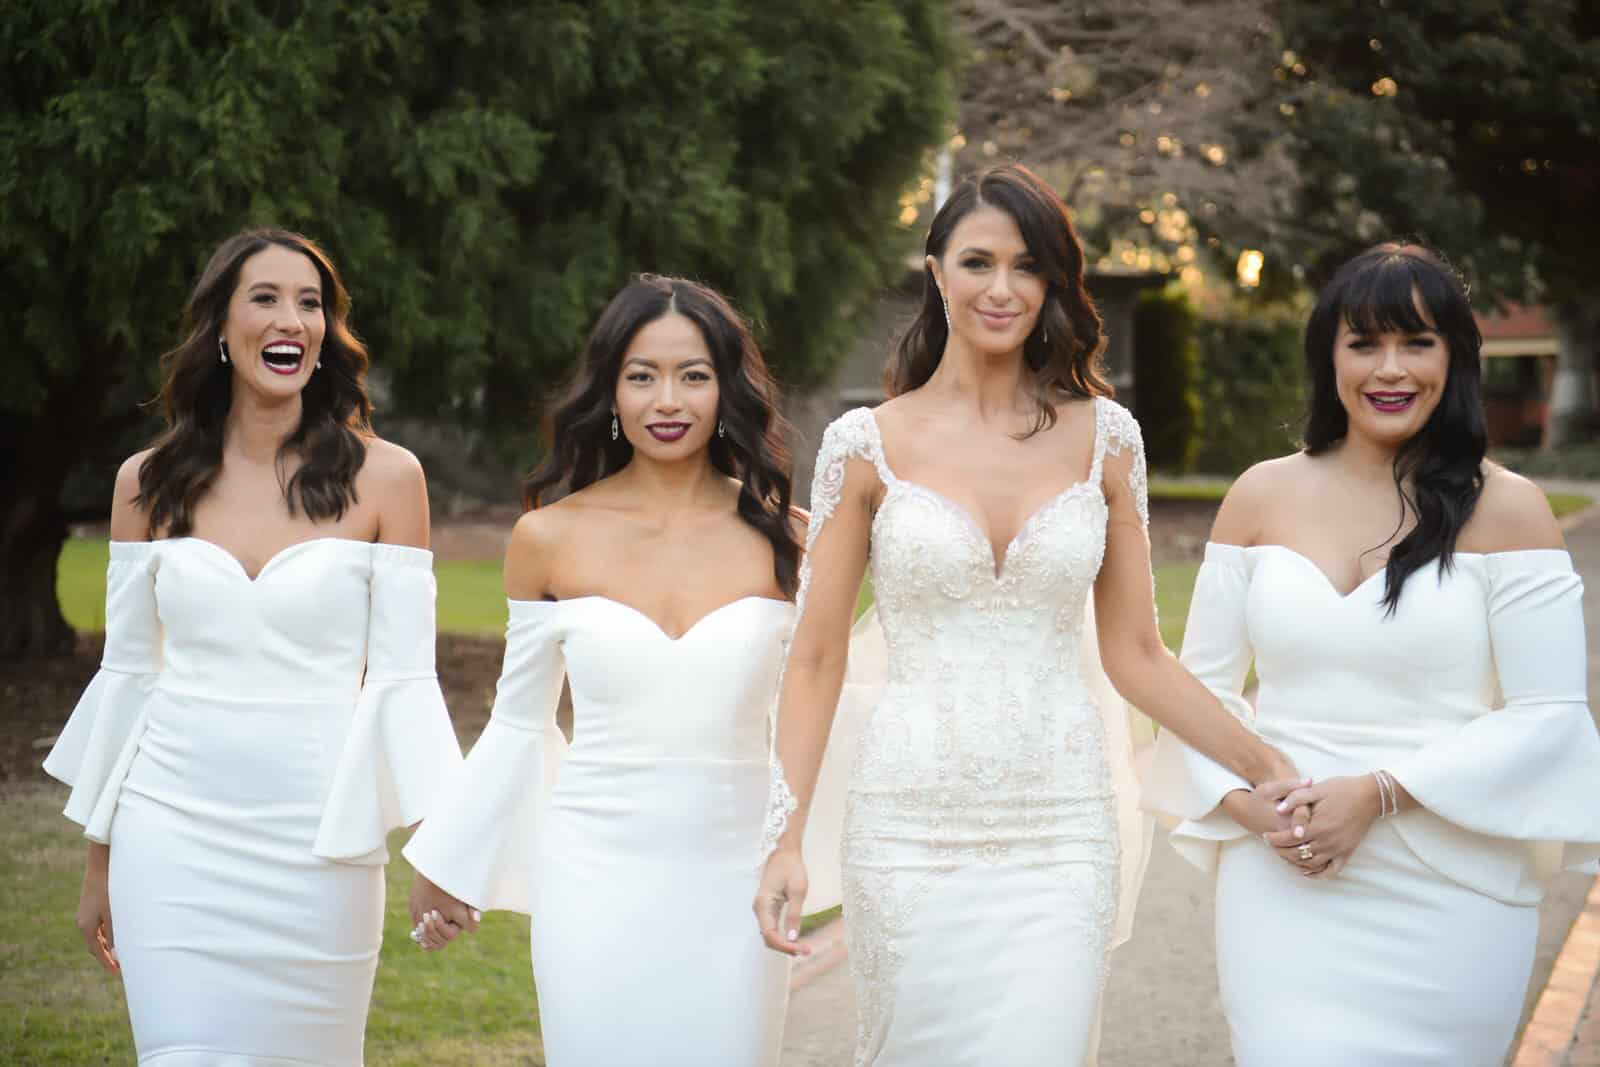 Ex Bachelor Contestant Emily Simms Melbourne Wedding Photos!